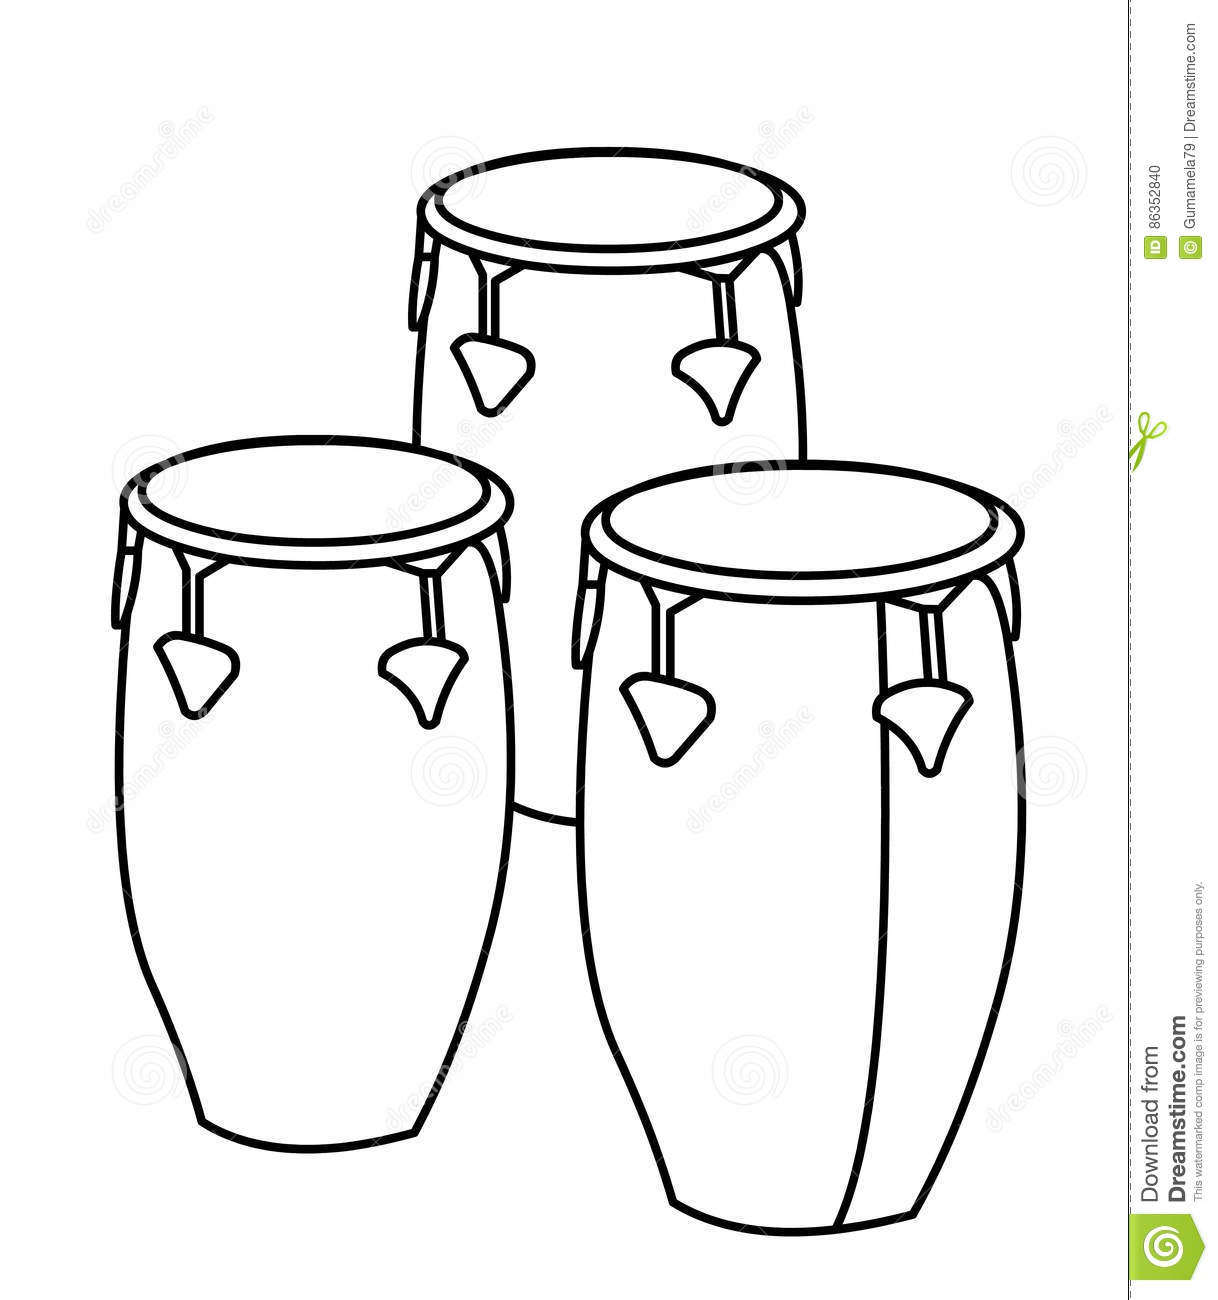 Drums Coloring Page Stock Illustration